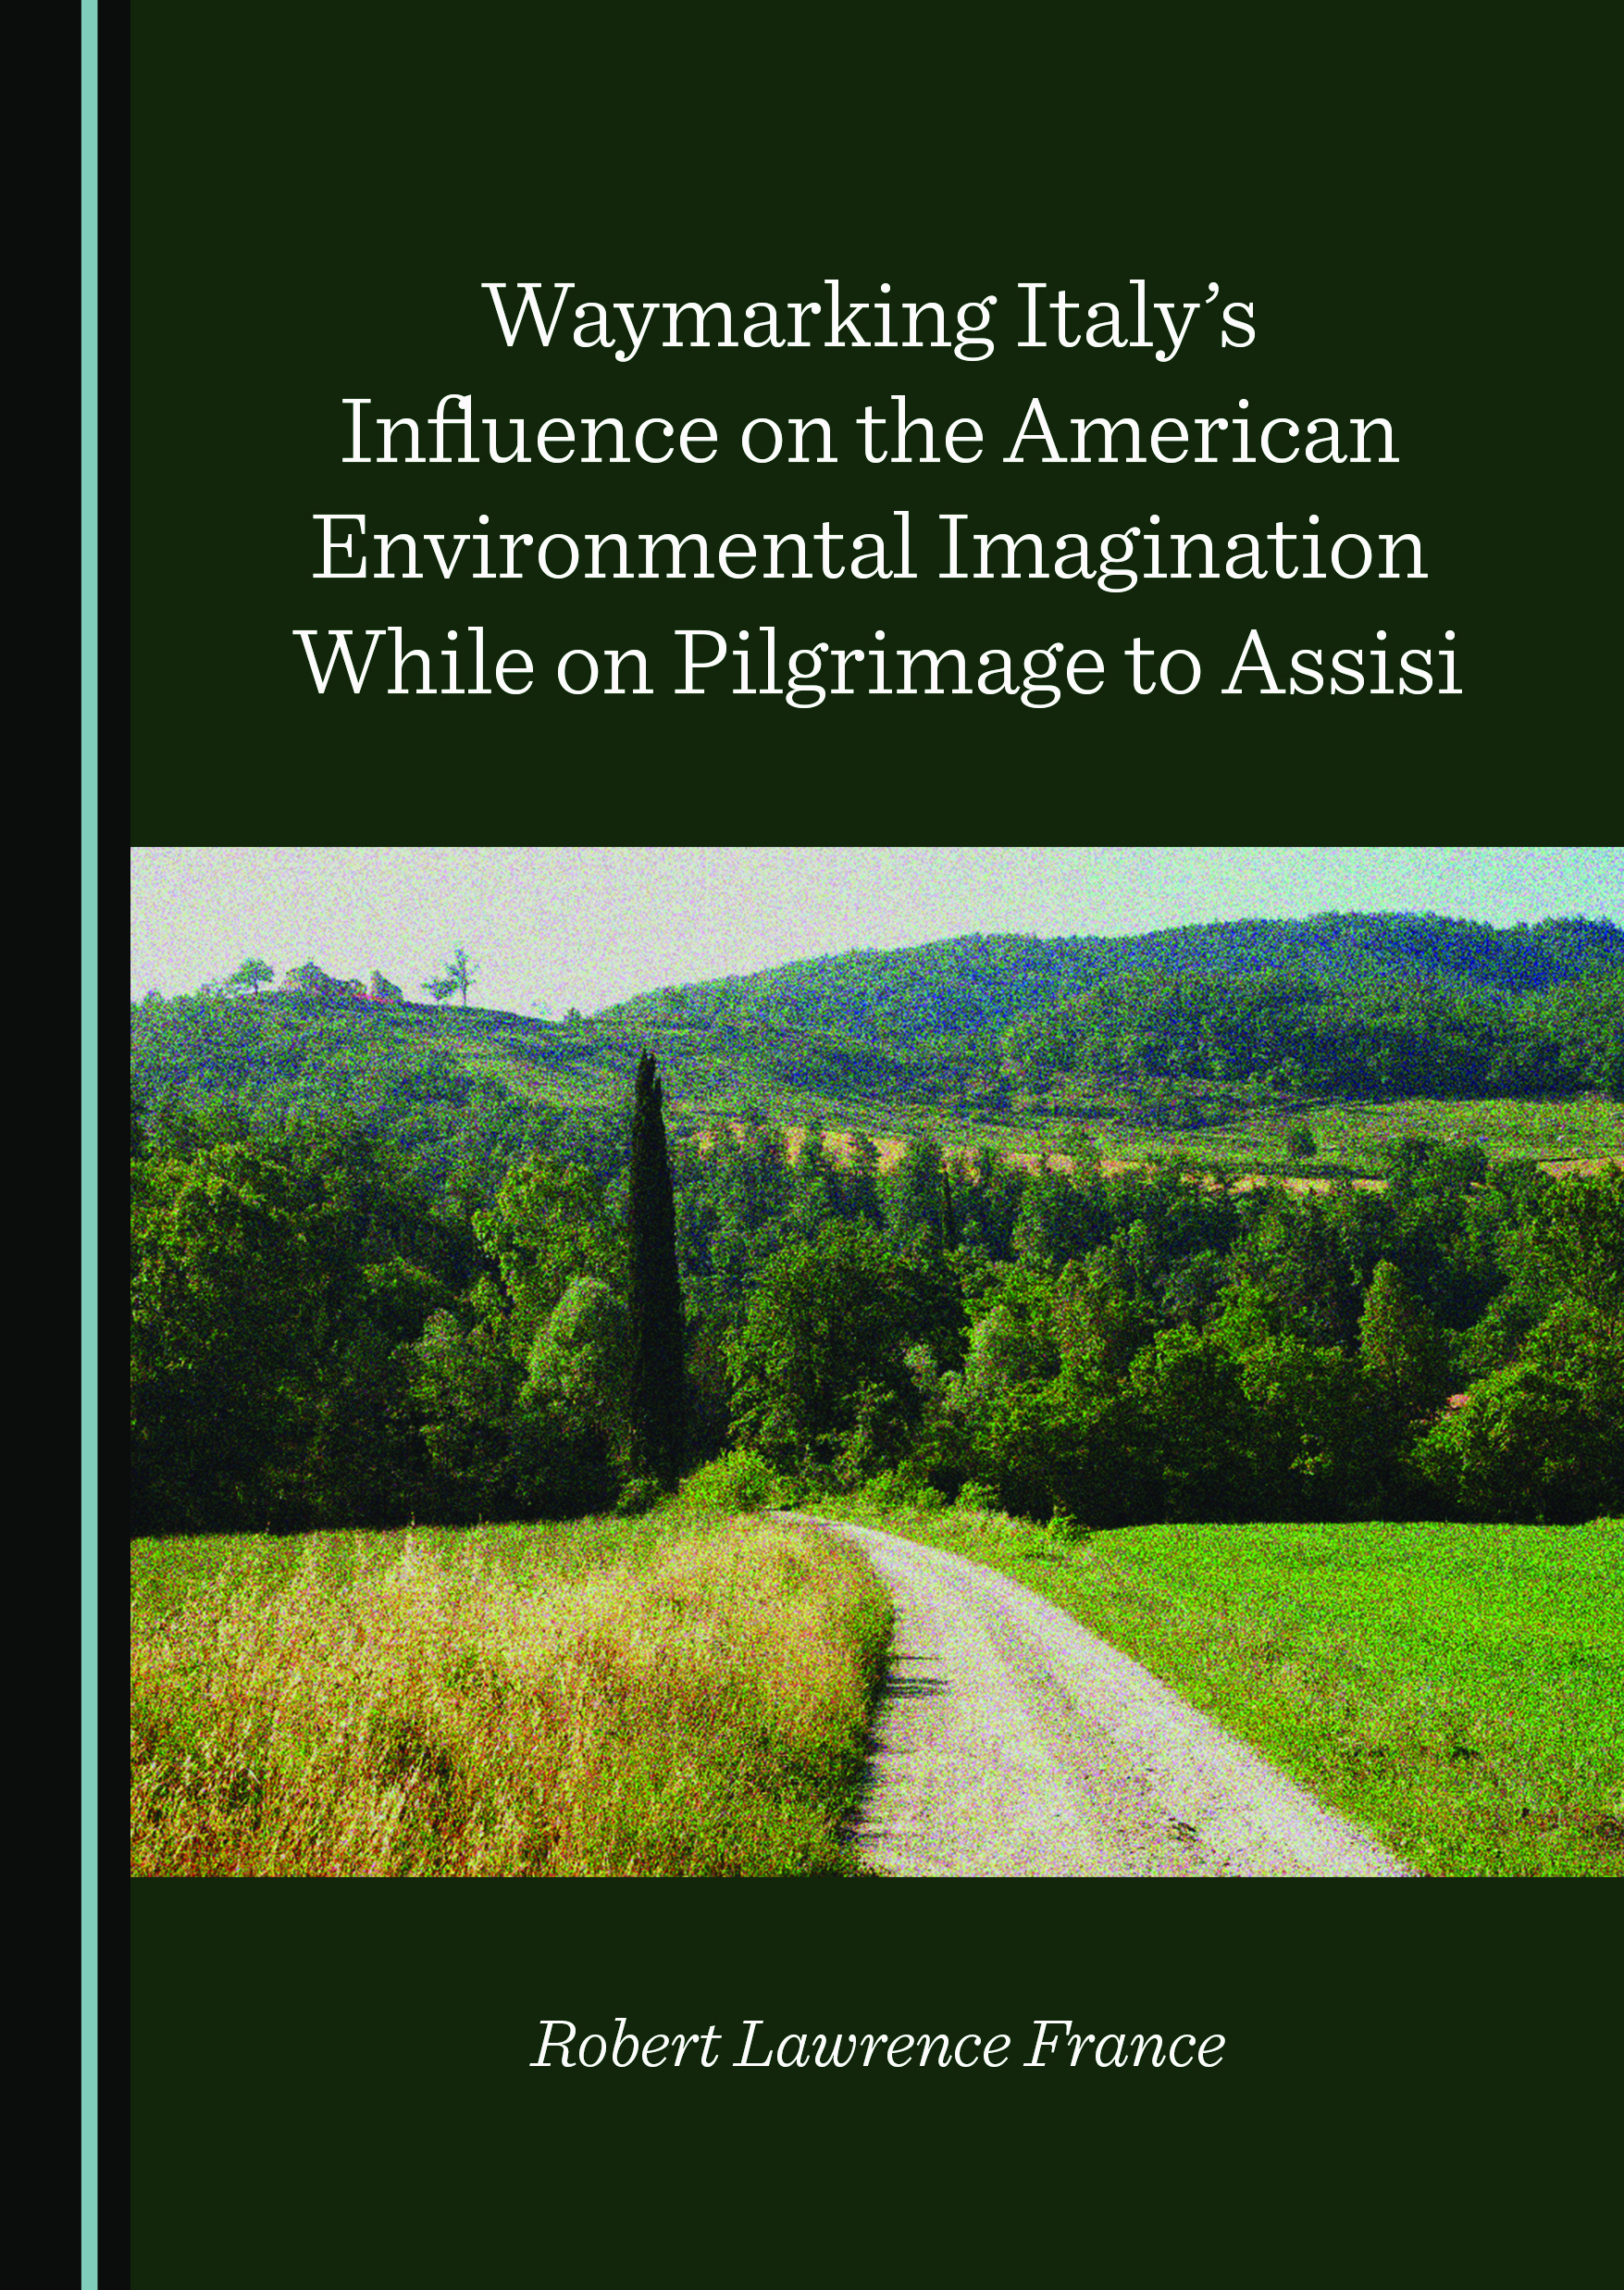 Waymarking Italy's Influence on the American Environmental Imagination While on Pilgrimage to Assisi